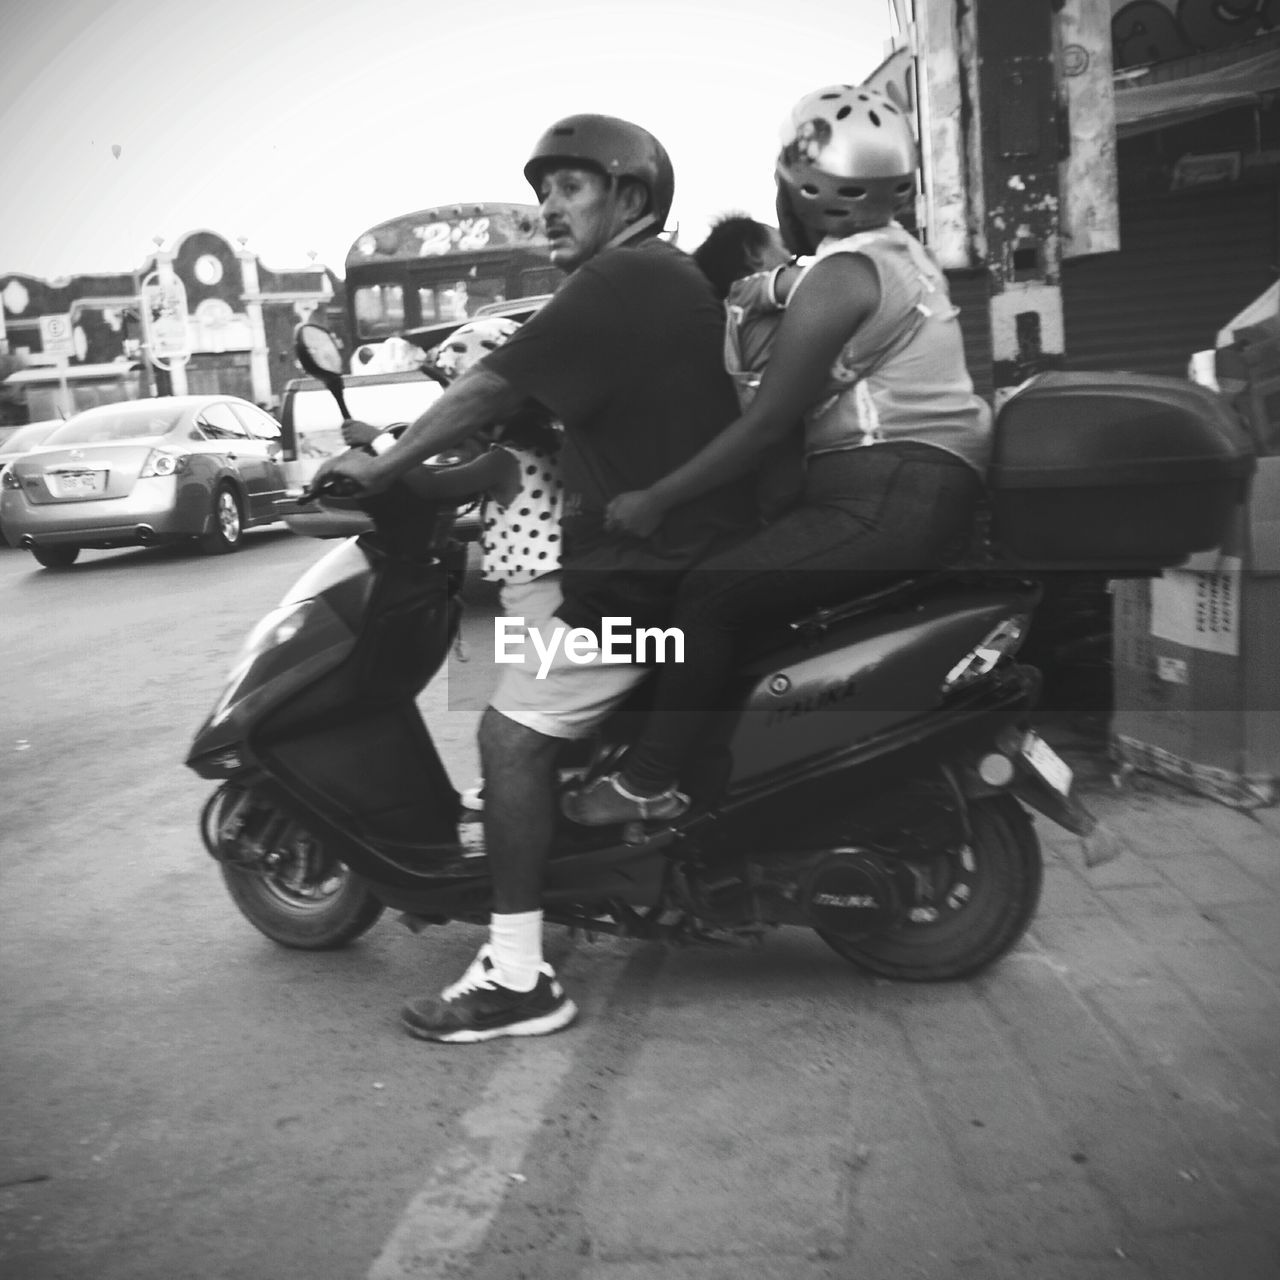 transportation, land vehicle, mode of transport, street, full length, building exterior, car, two people, built structure, architecture, motorcycle, outdoors, stationary, real people, city, young adult, day, young women, sitting, city life, lifestyles, bicycle, men, women, togetherness, scooter, people